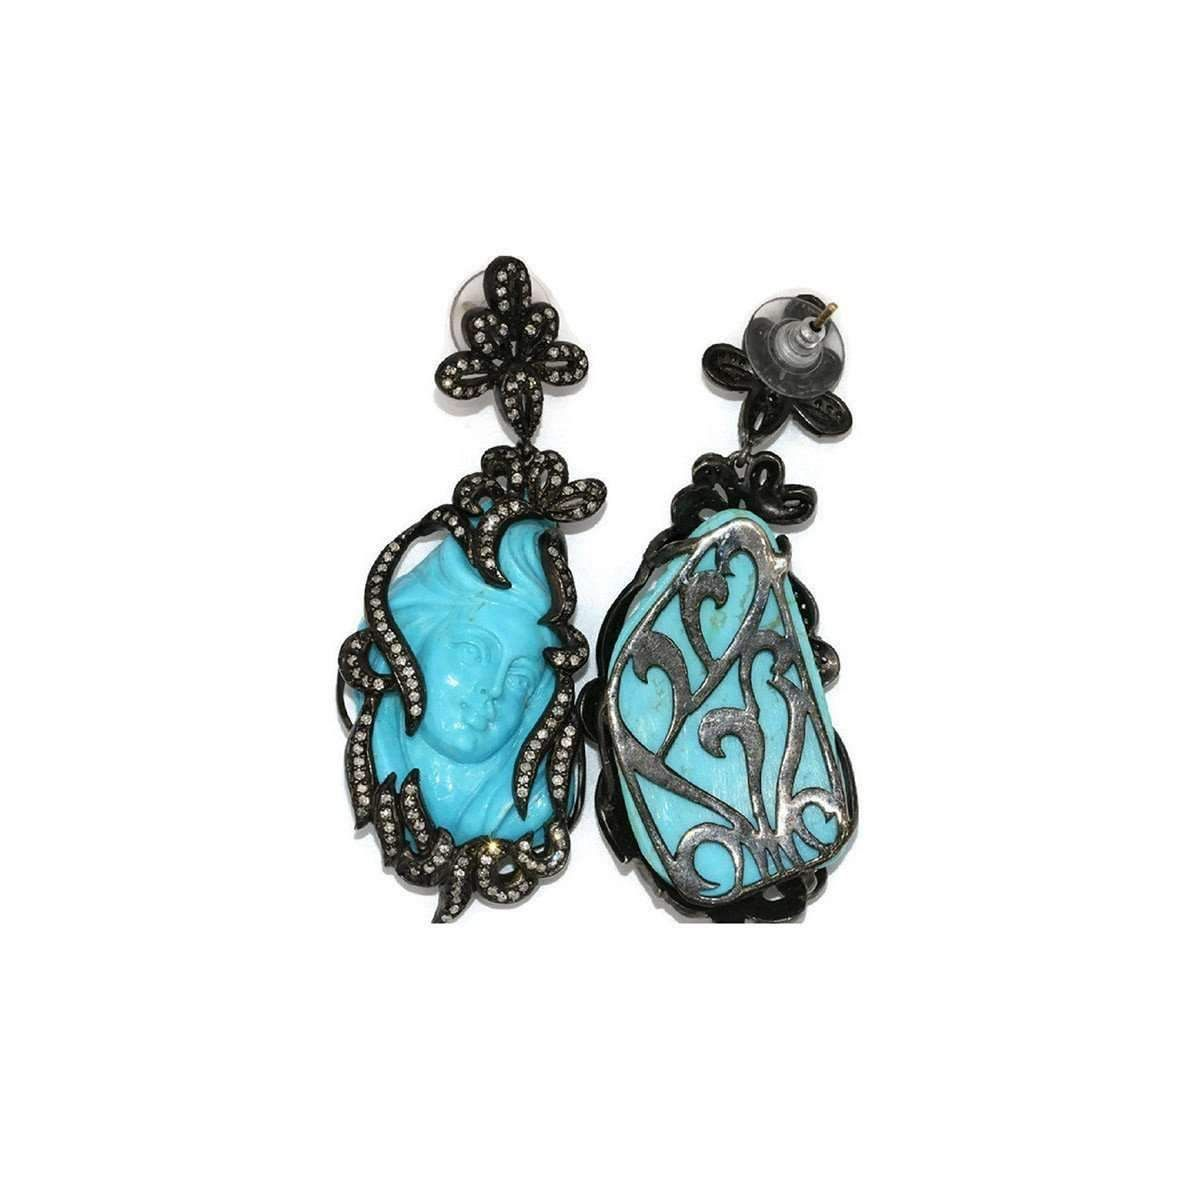 True Art Handmade With Love And Craft These Graceful Designer Earrings Include Natural Diamonds